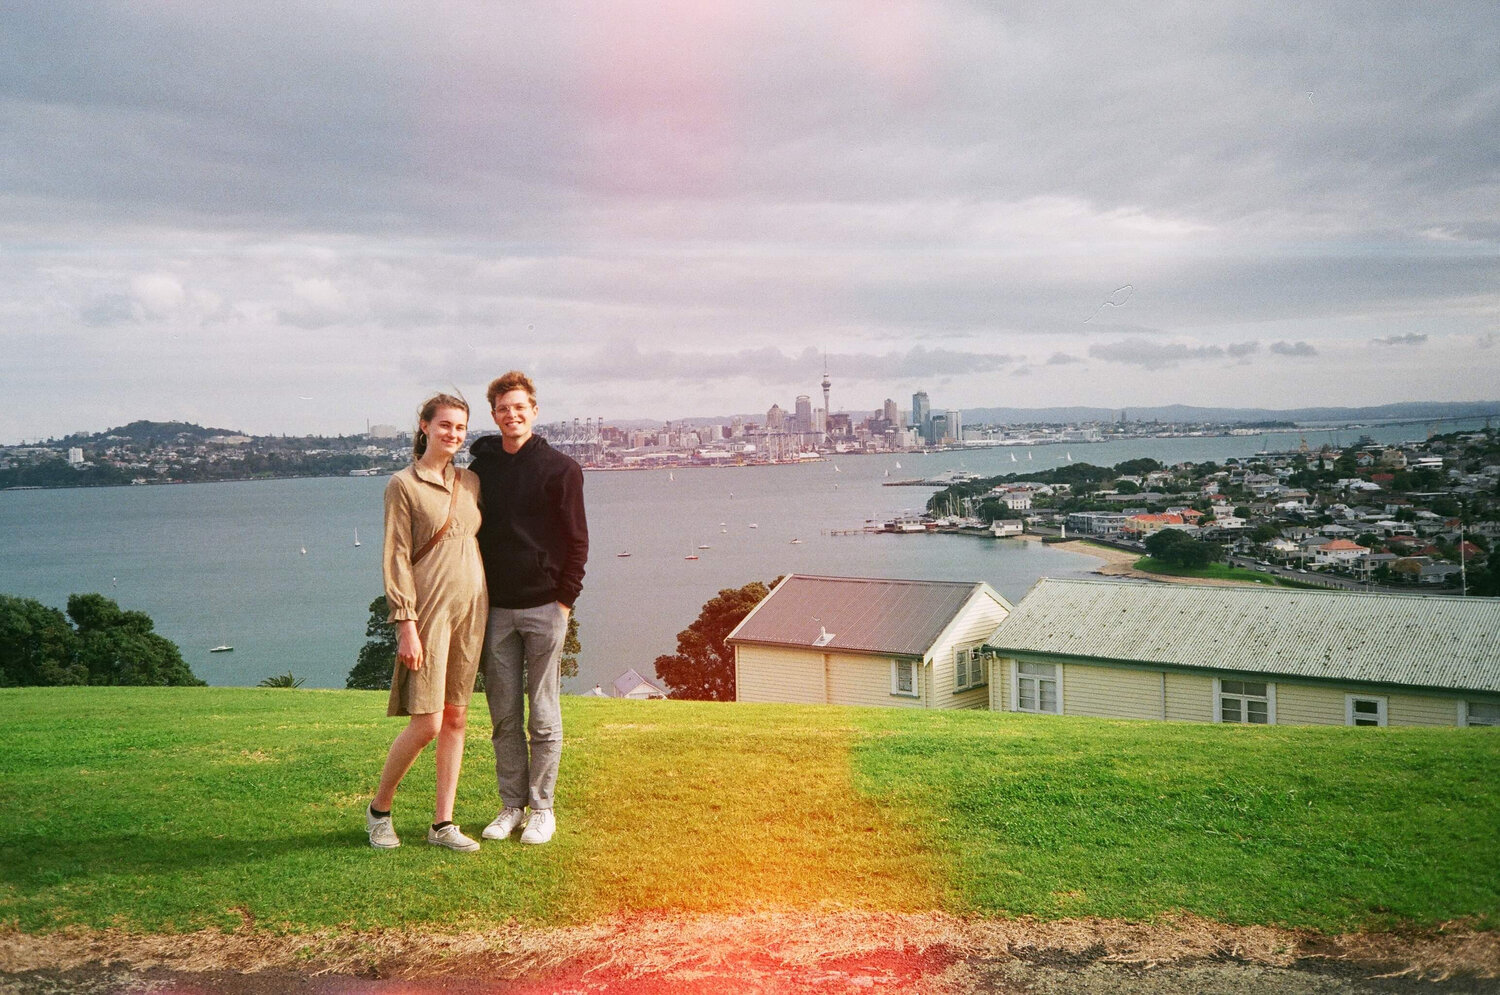 Alex and I at North Head in Devonport on Auckland's North Shore, just before she left to go back to Germany.